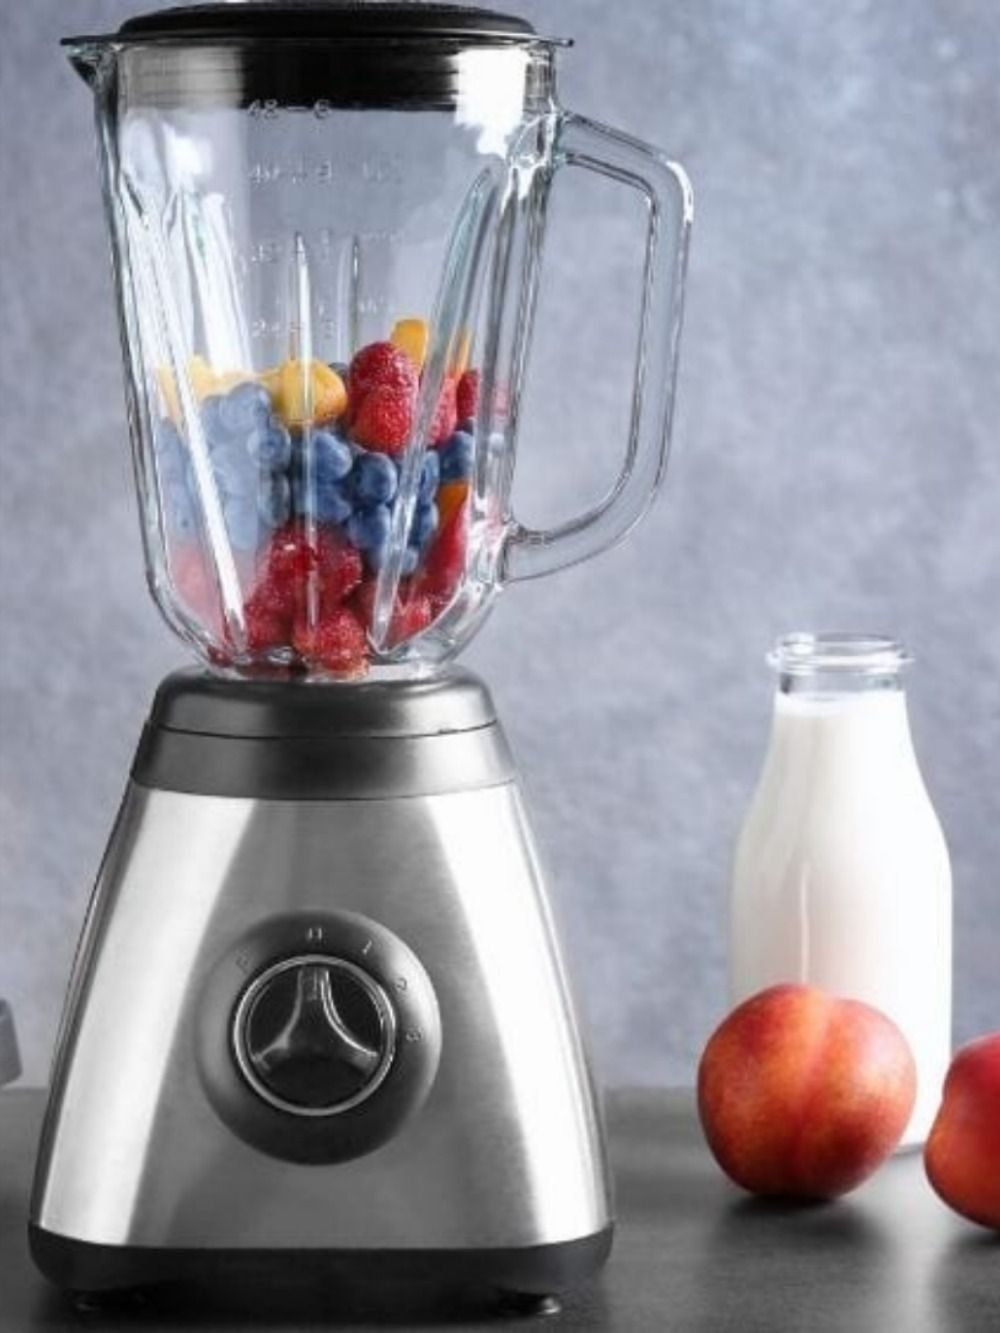 Looking for a blender that fits your budget? We've got the lowdown on the best products in different price ranges. #blenders #newhomeowners